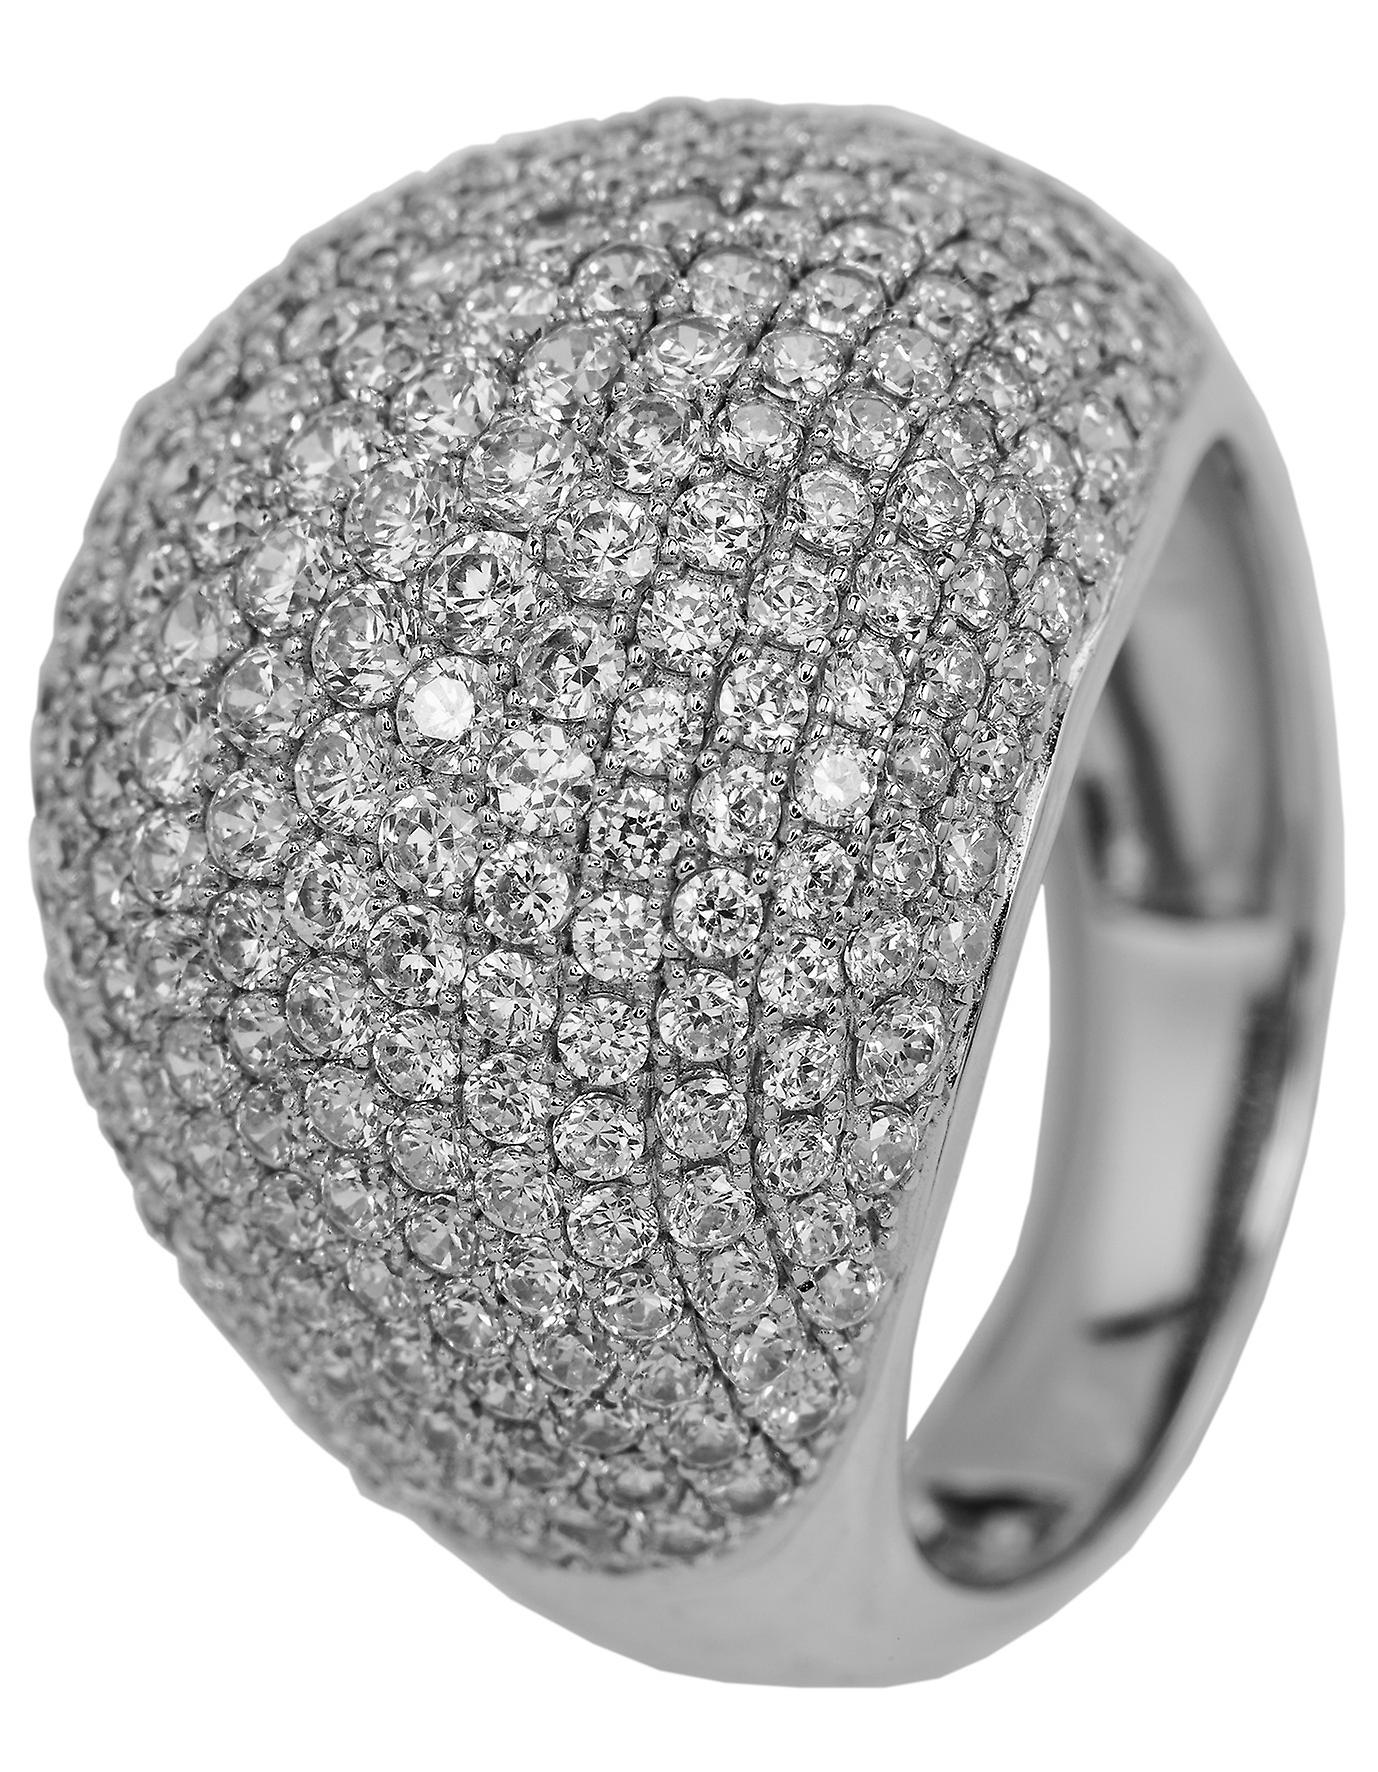 Burgmeister women's ring JBM2003-111, 925 sterling silver rhodanized, white zirconia